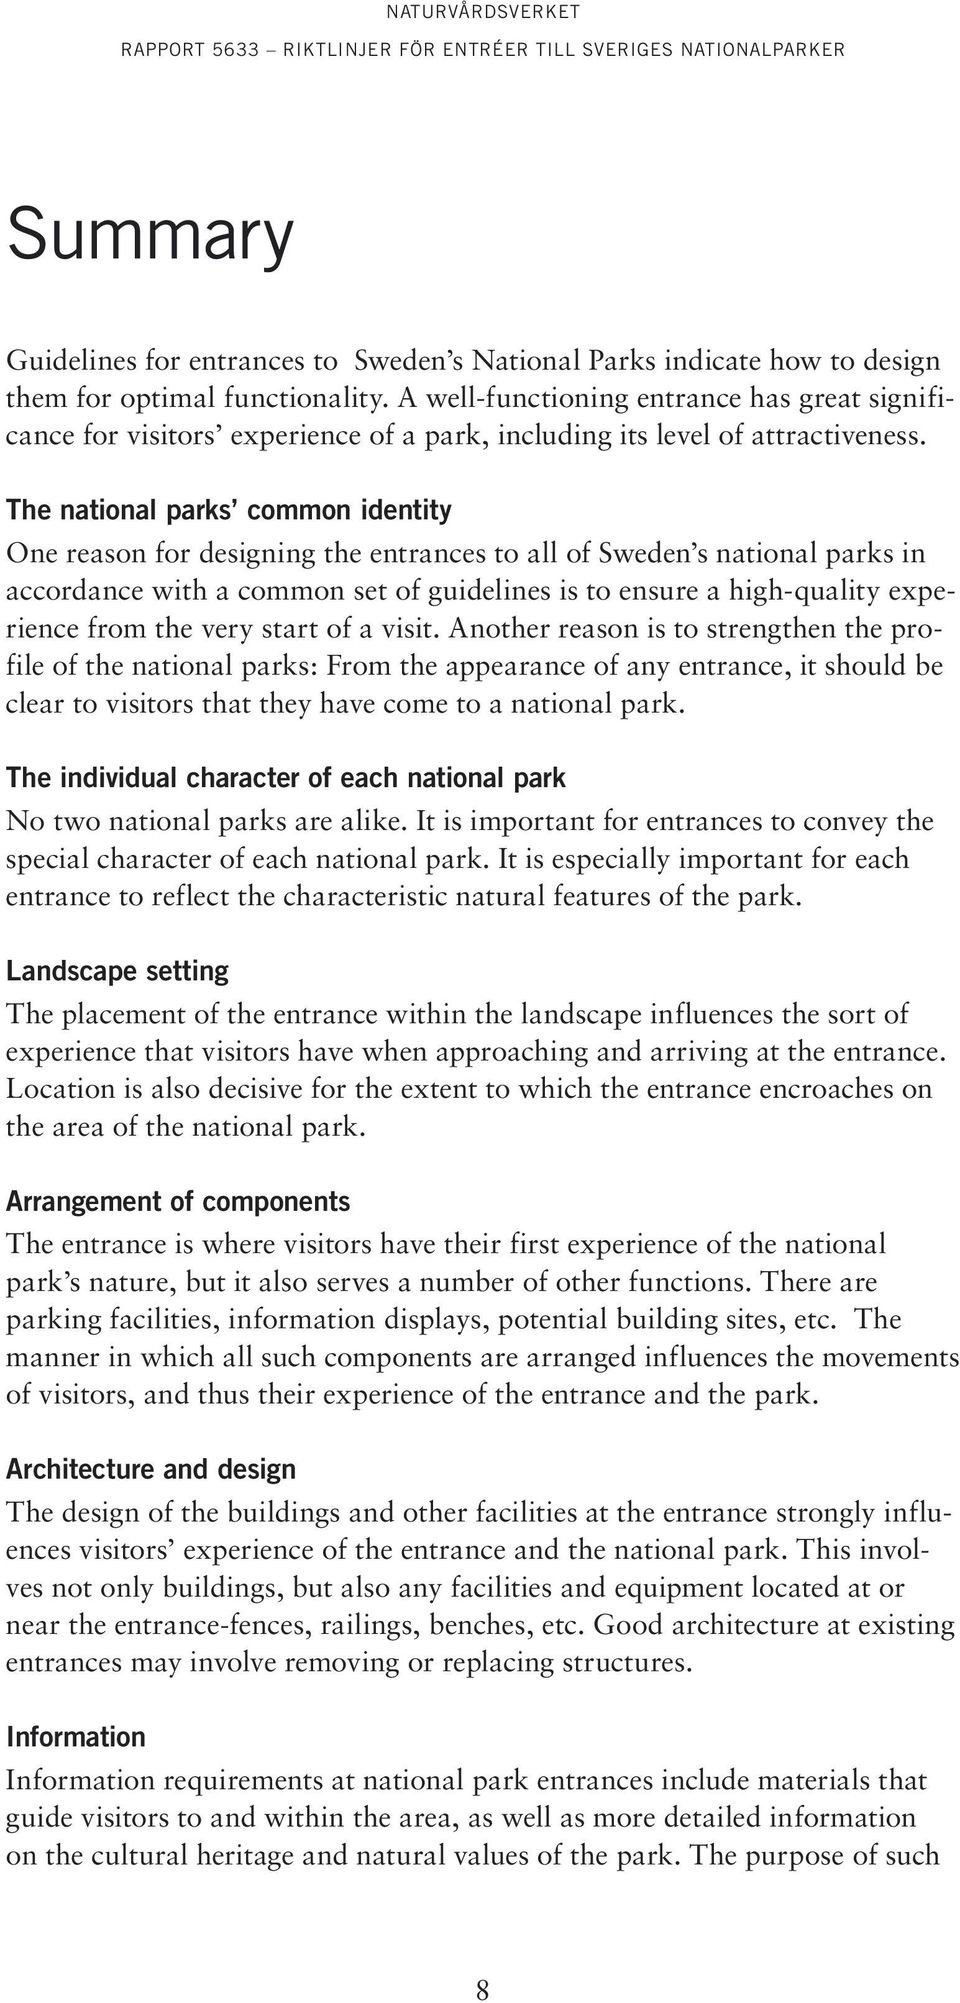 The national parks common identity One reason for designing the entrances to all of Sweden s national parks in accordance with a common set of guidelines is to ensure a high-quality experience from